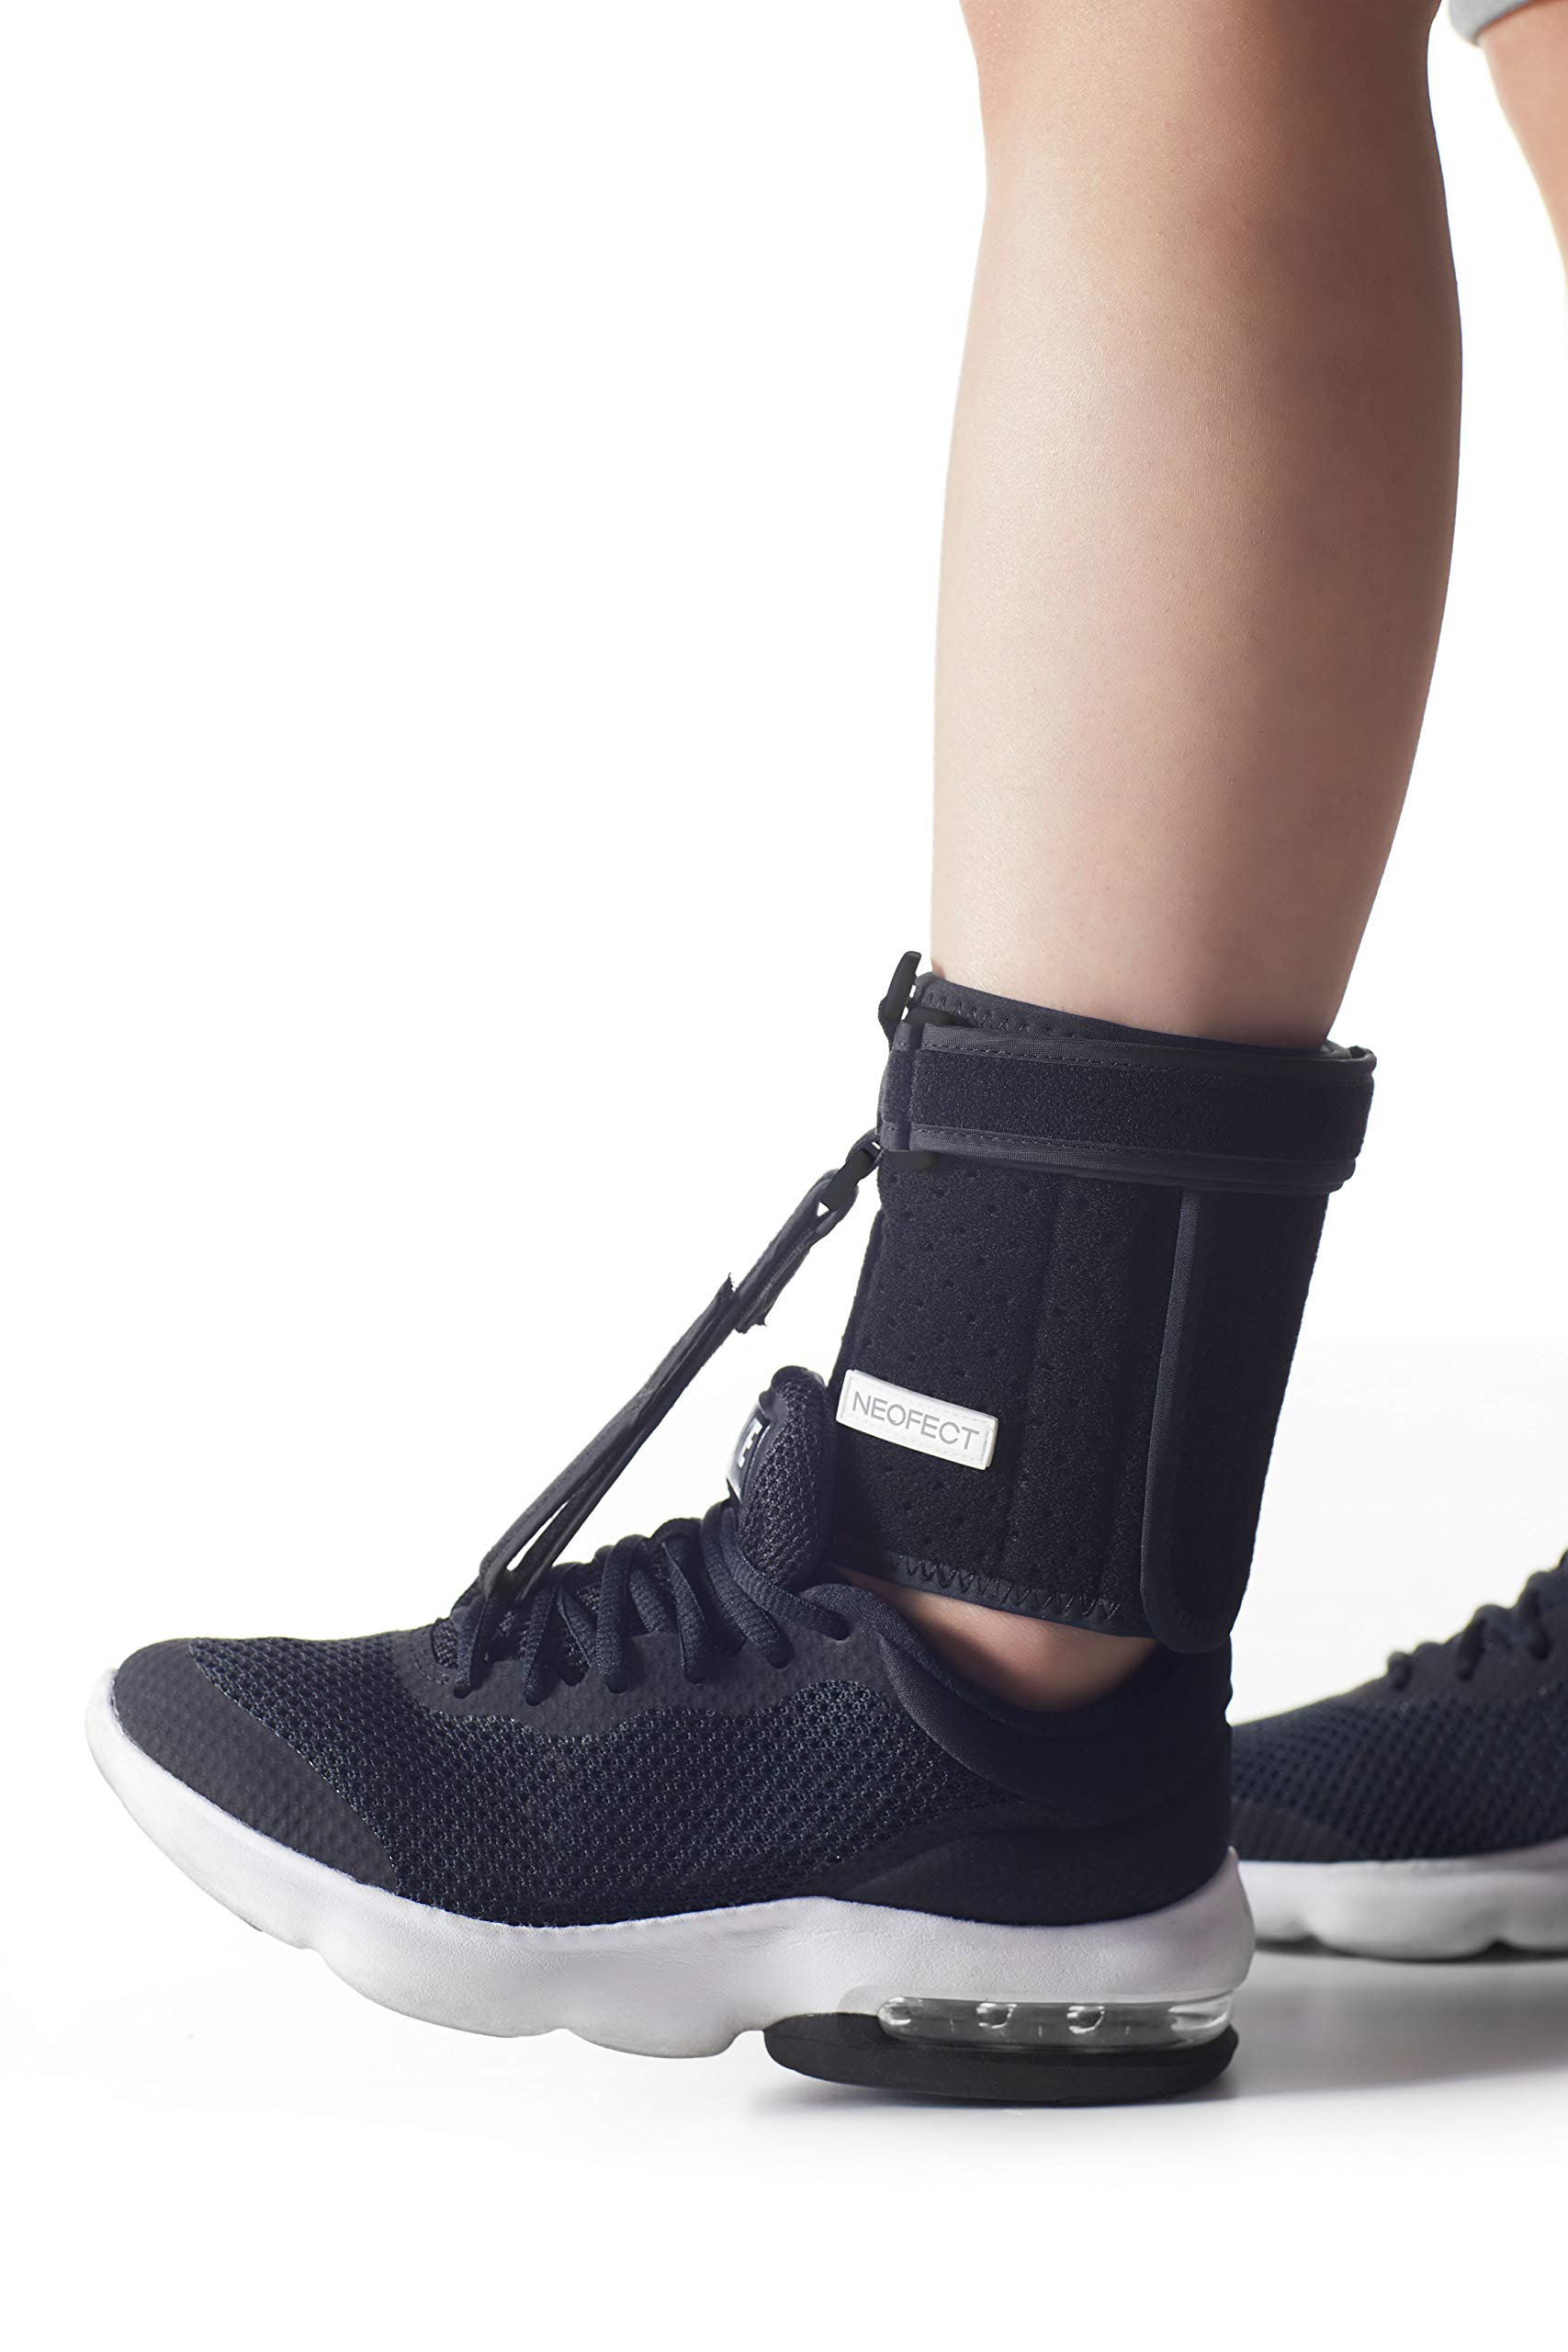 NEOFECT Foot Up Brace - Supports Dorsiflexion, Ankle Stability, Stroke for Stroke, TBI, ALS, MS, Foot Brace by NEOFECT